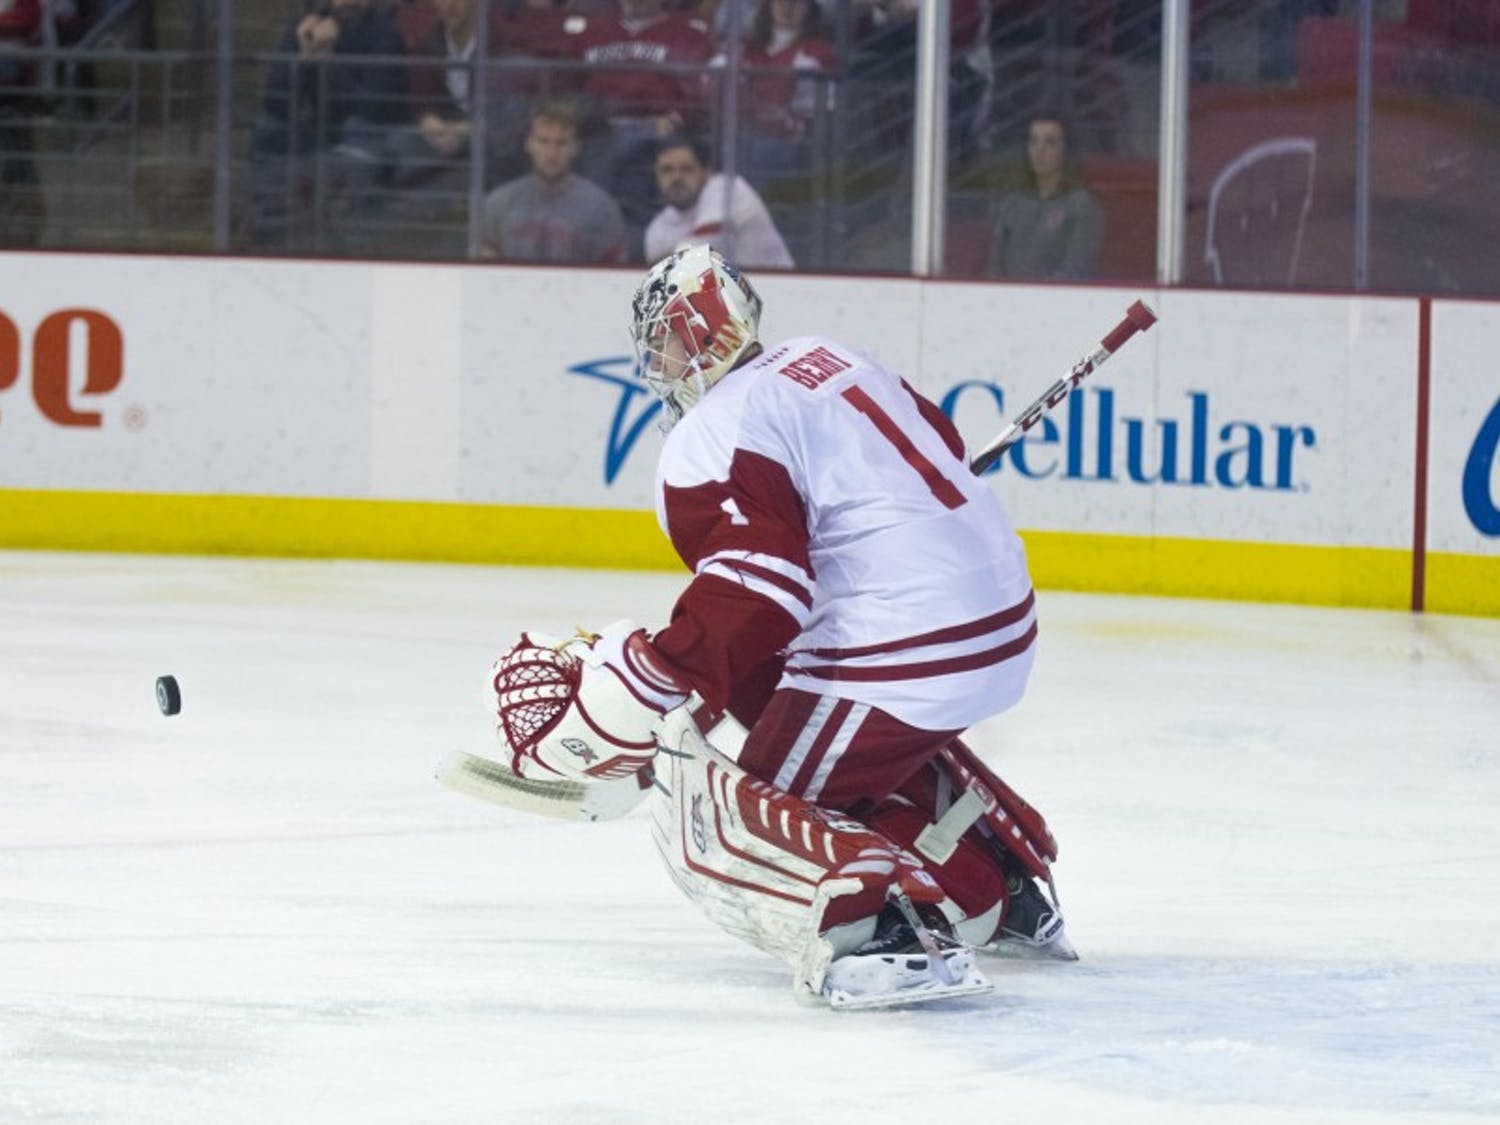 Junior goaltender Jack Berry produced one of his best performances of the season in his first action in over a month, but it wasn't enough for the Badgers to come out with a win against Denver.